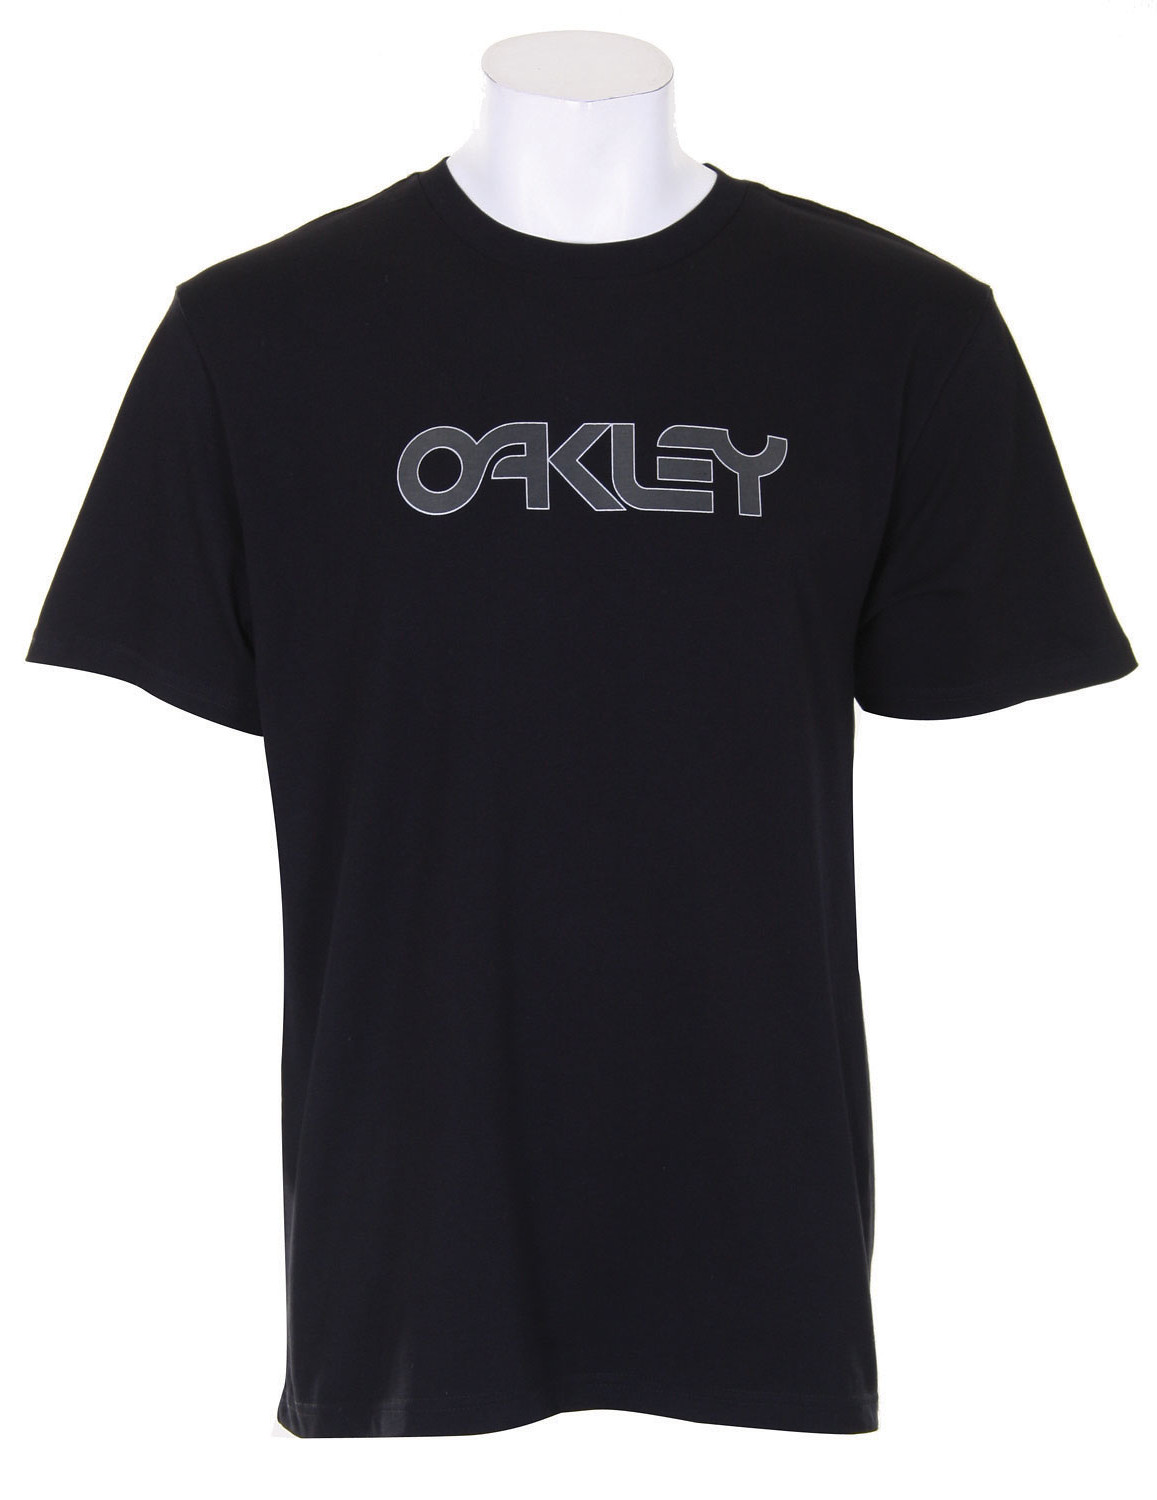 Oakley Retro Metallic T-Shirt Black  oakley-retrometalic-t-blk-09.jpg